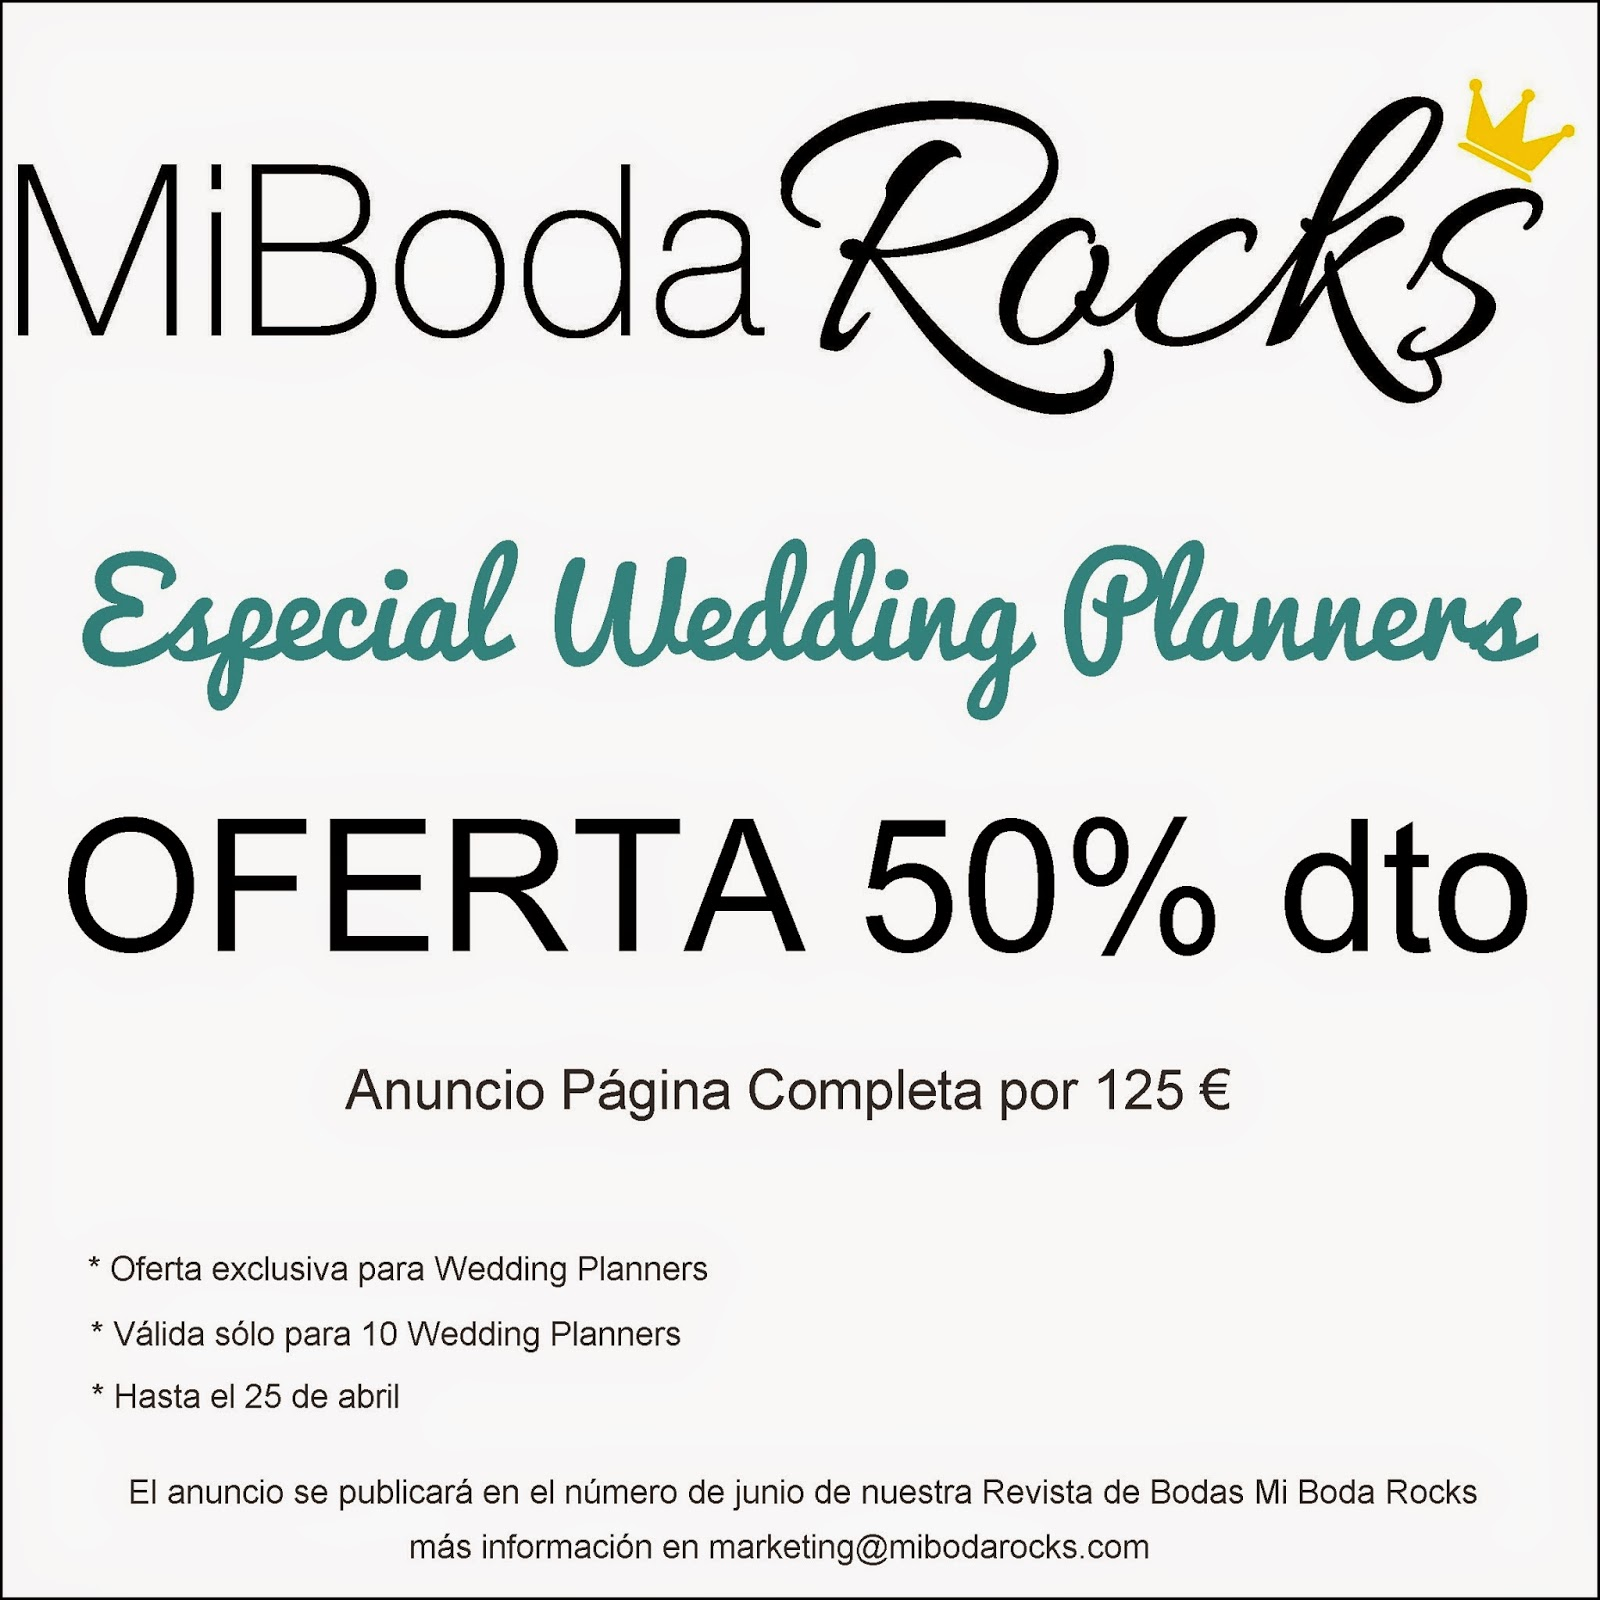 Oferta Especial Wedding Planners Revista Mi Boda Rocks blog bodas